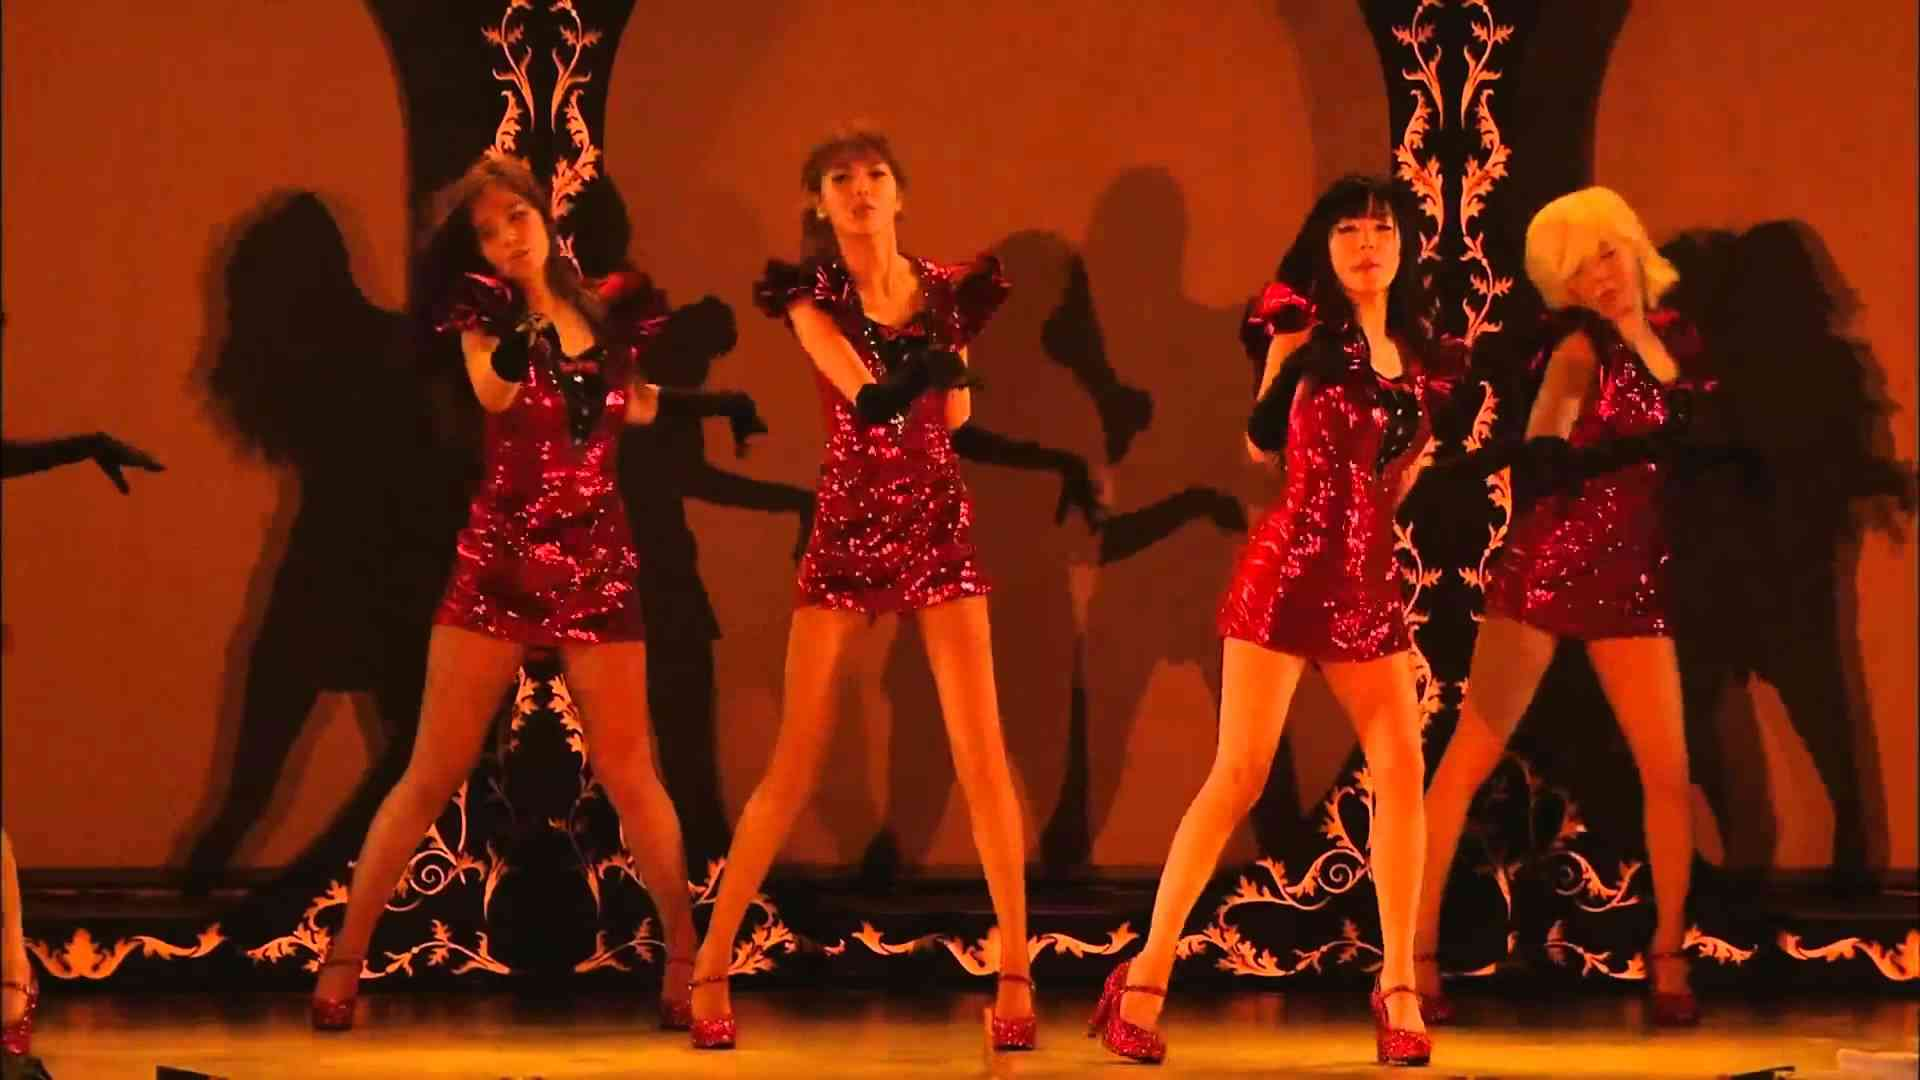 SNSD - RUN DEVIL RUN - 2nd Japan Tour [1080p] - YouTube